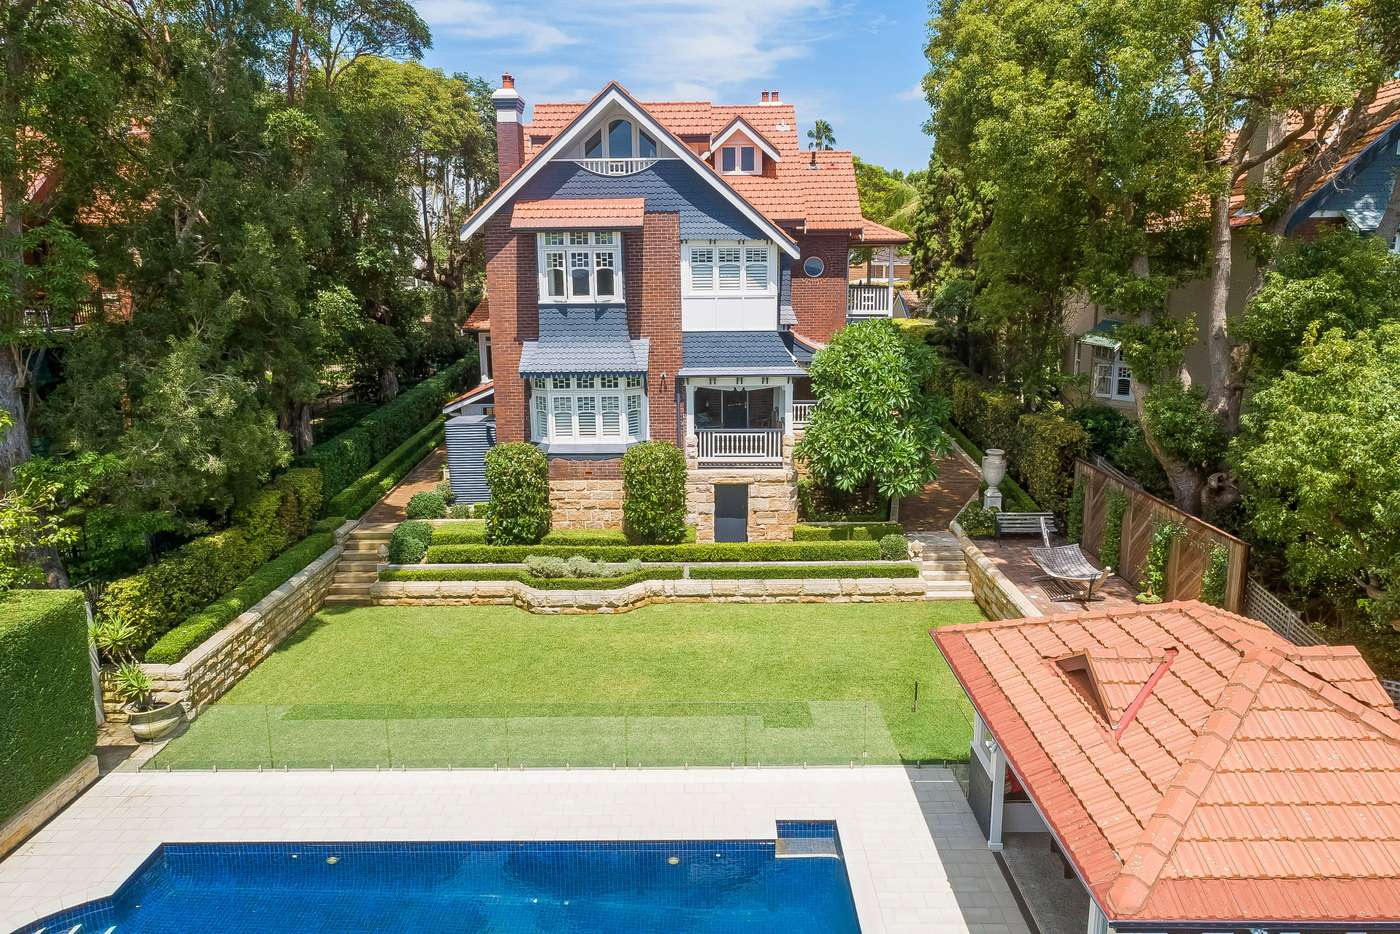 Main view of Homely house listing, 3 Ellamatta Avenue, Mosman NSW 2088